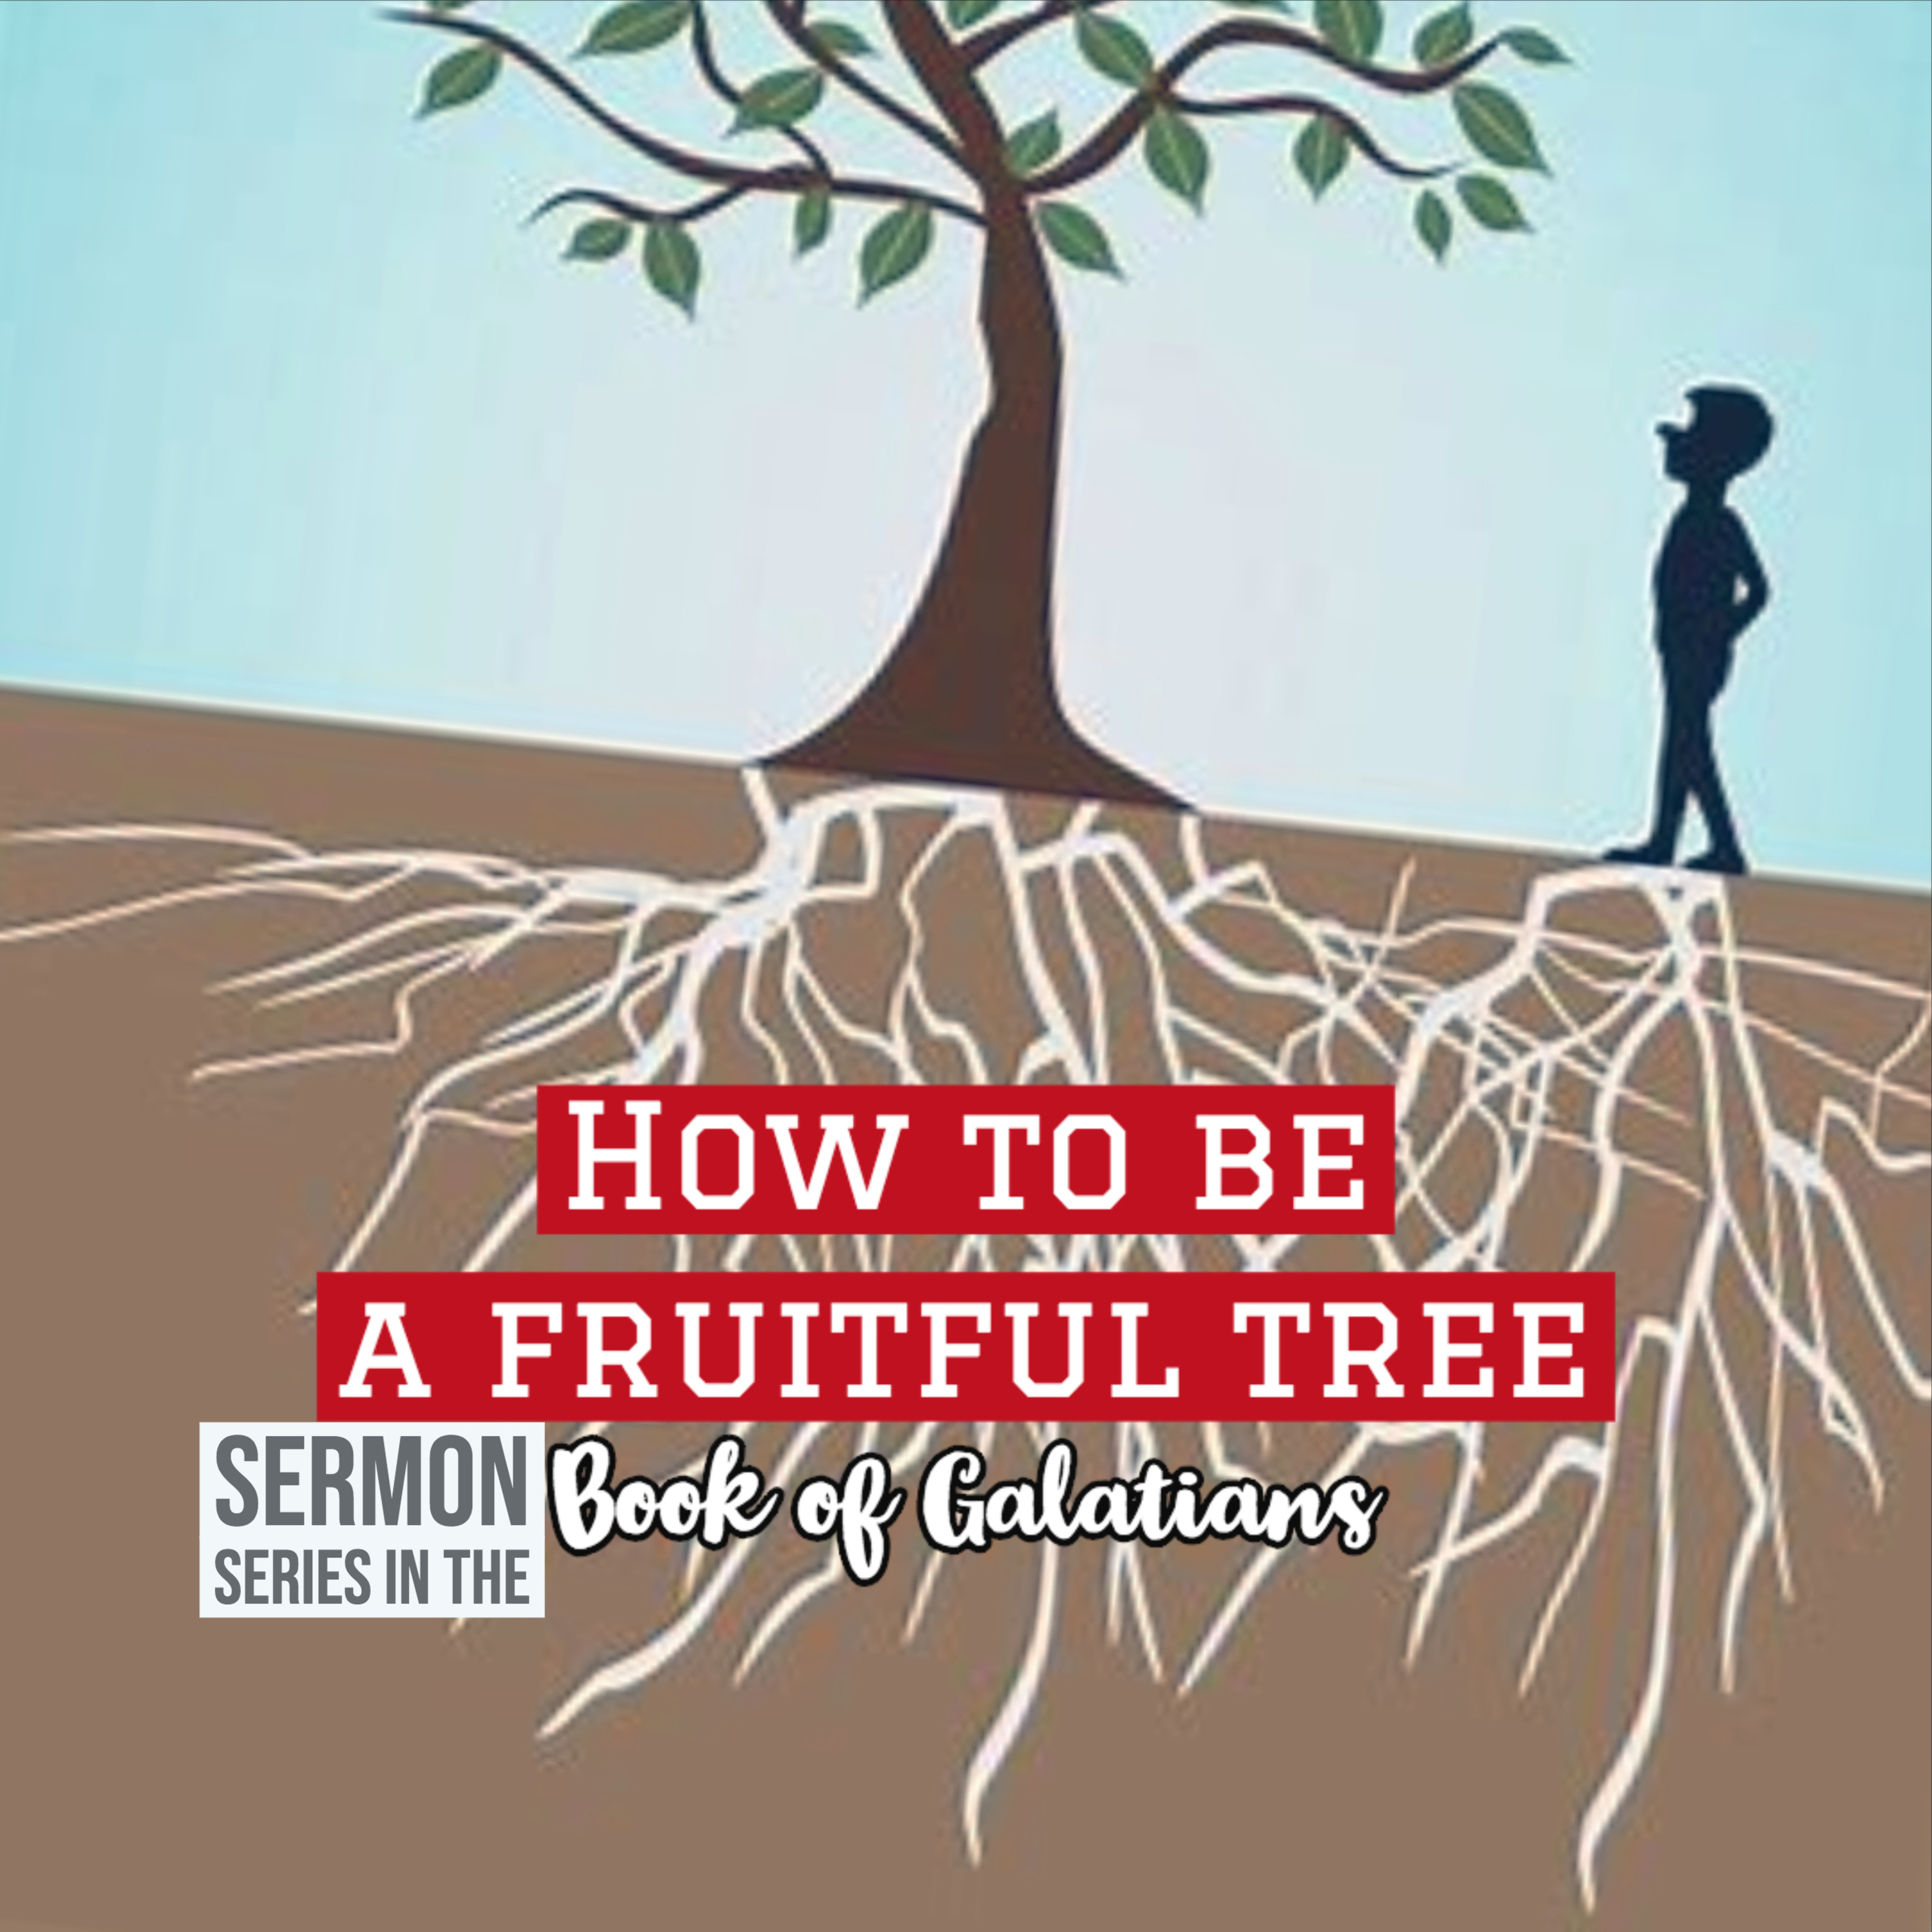 How to be a fruitful tree (Sermon Series of Galatians)